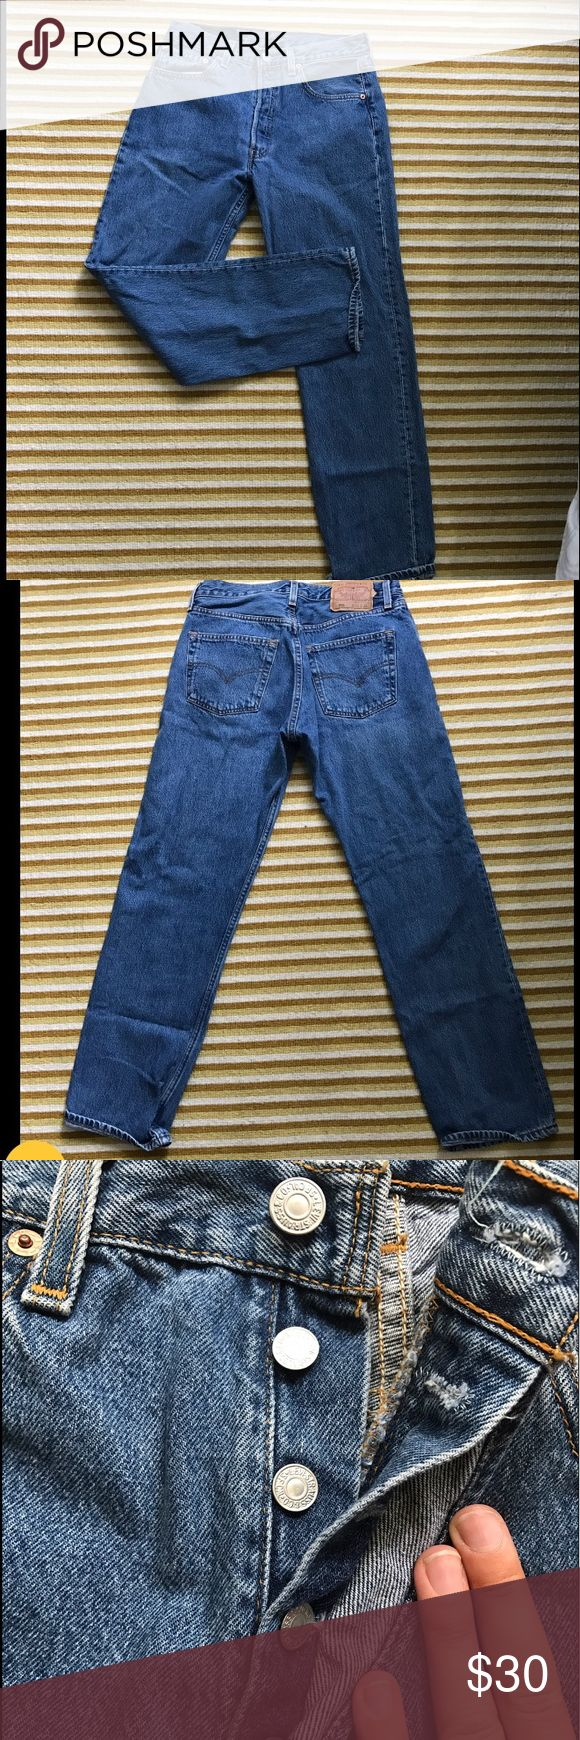 Boyfriend fit 511 Levi's jeans Perfect condition Levi's , boyfriend fit and high rise . Love love these , have a vintage style  to them and fit so adorable . Waist is 15 inches across and say 32 on the back label (measure and pair you love the fit ) Levi's Jeans Boyfriend